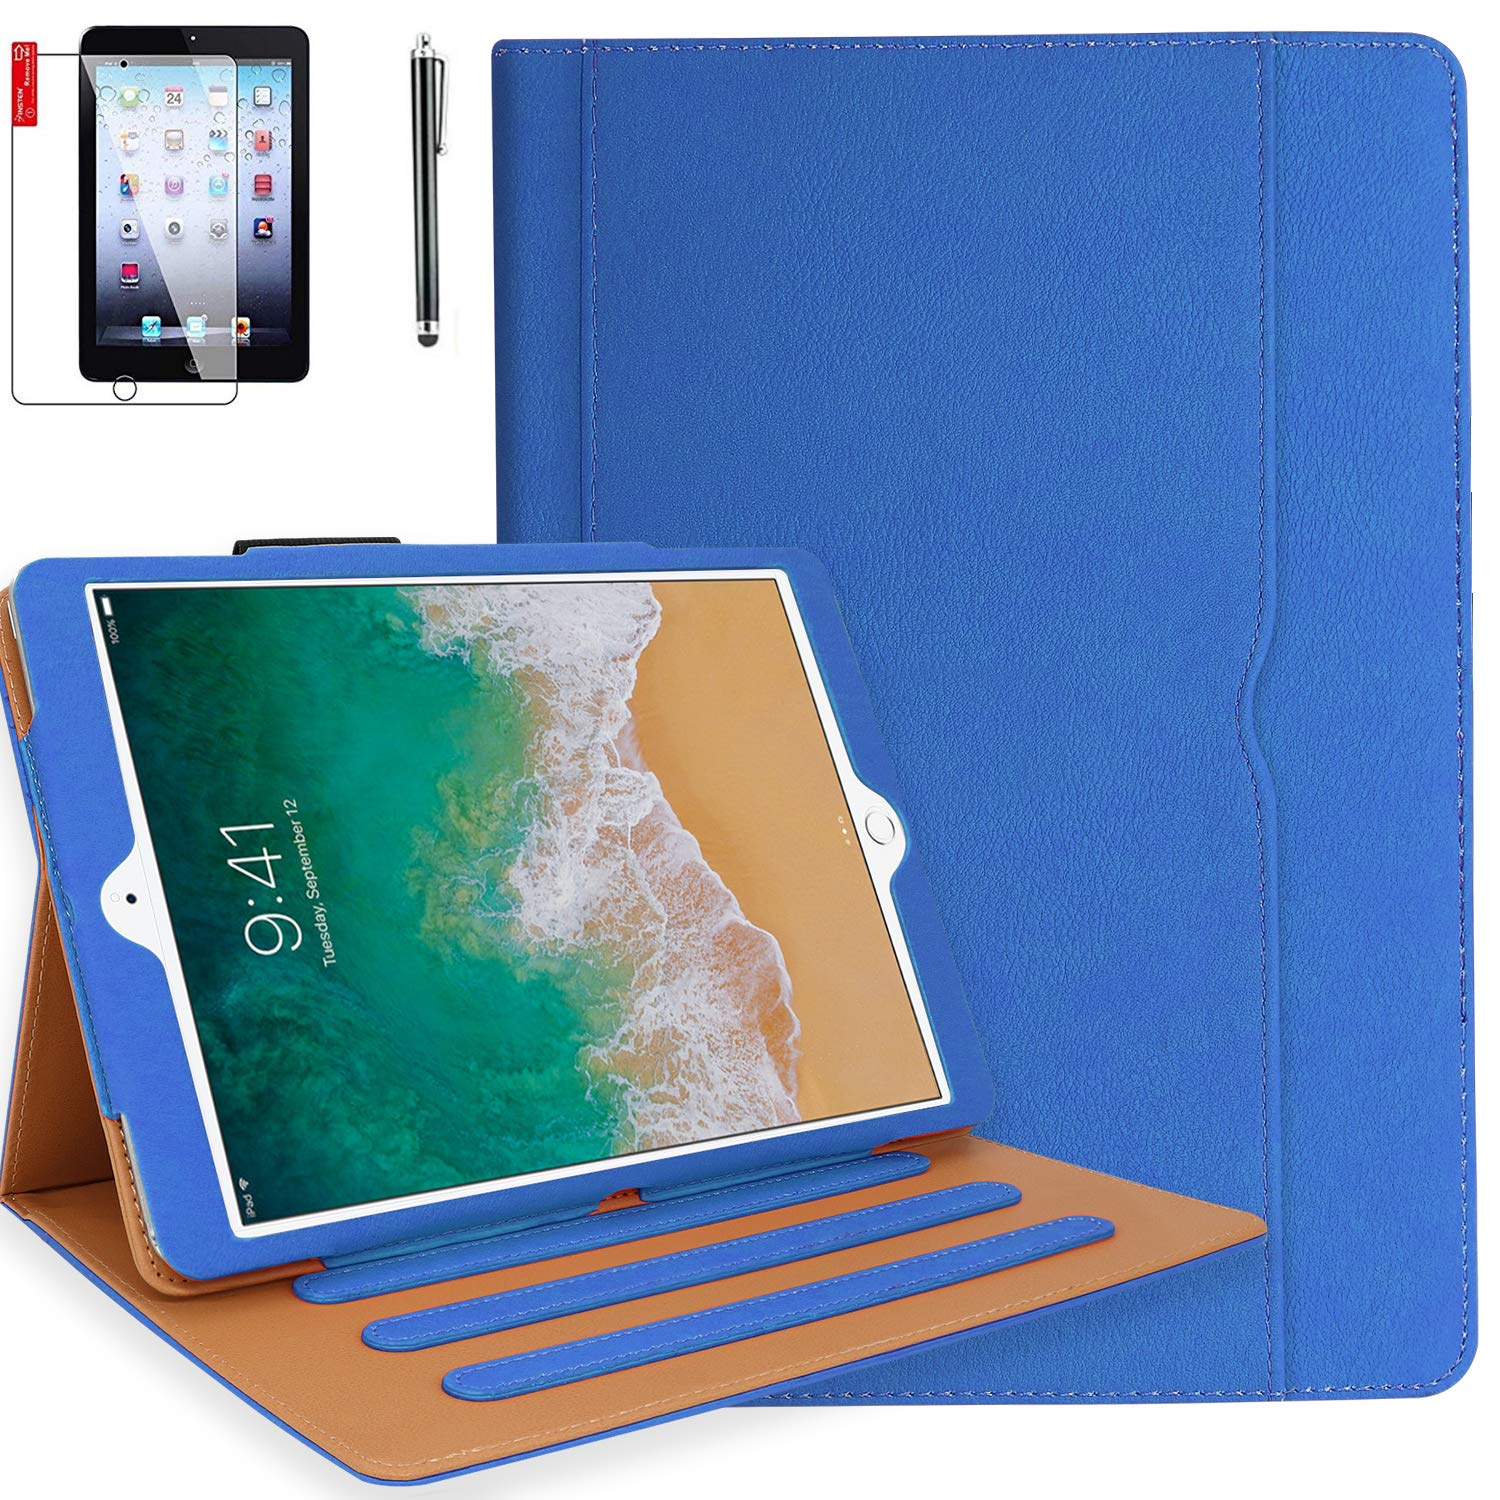 iPad 6th Generation Cases with Bonus Screen Protector and Stylus - iPad 9.7 inch 2018 2017 Air 1 Air 2 Case Cover - Hand Strap, Auto Sleep Wake, Multi-Angle Stand - A1822 A1823 A1474(Sky Blue)